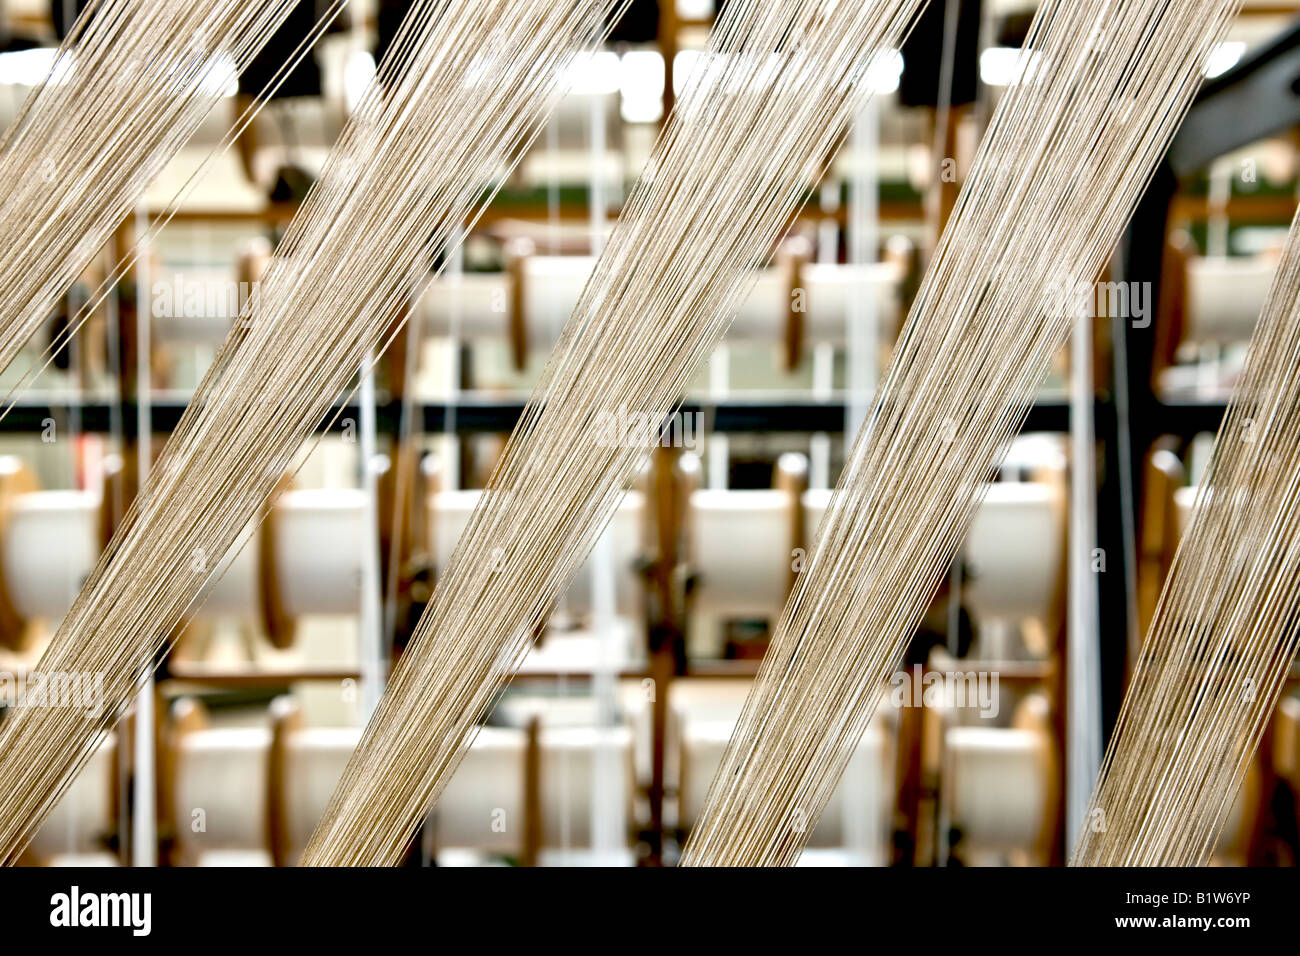 Weaving proces - Stock Image